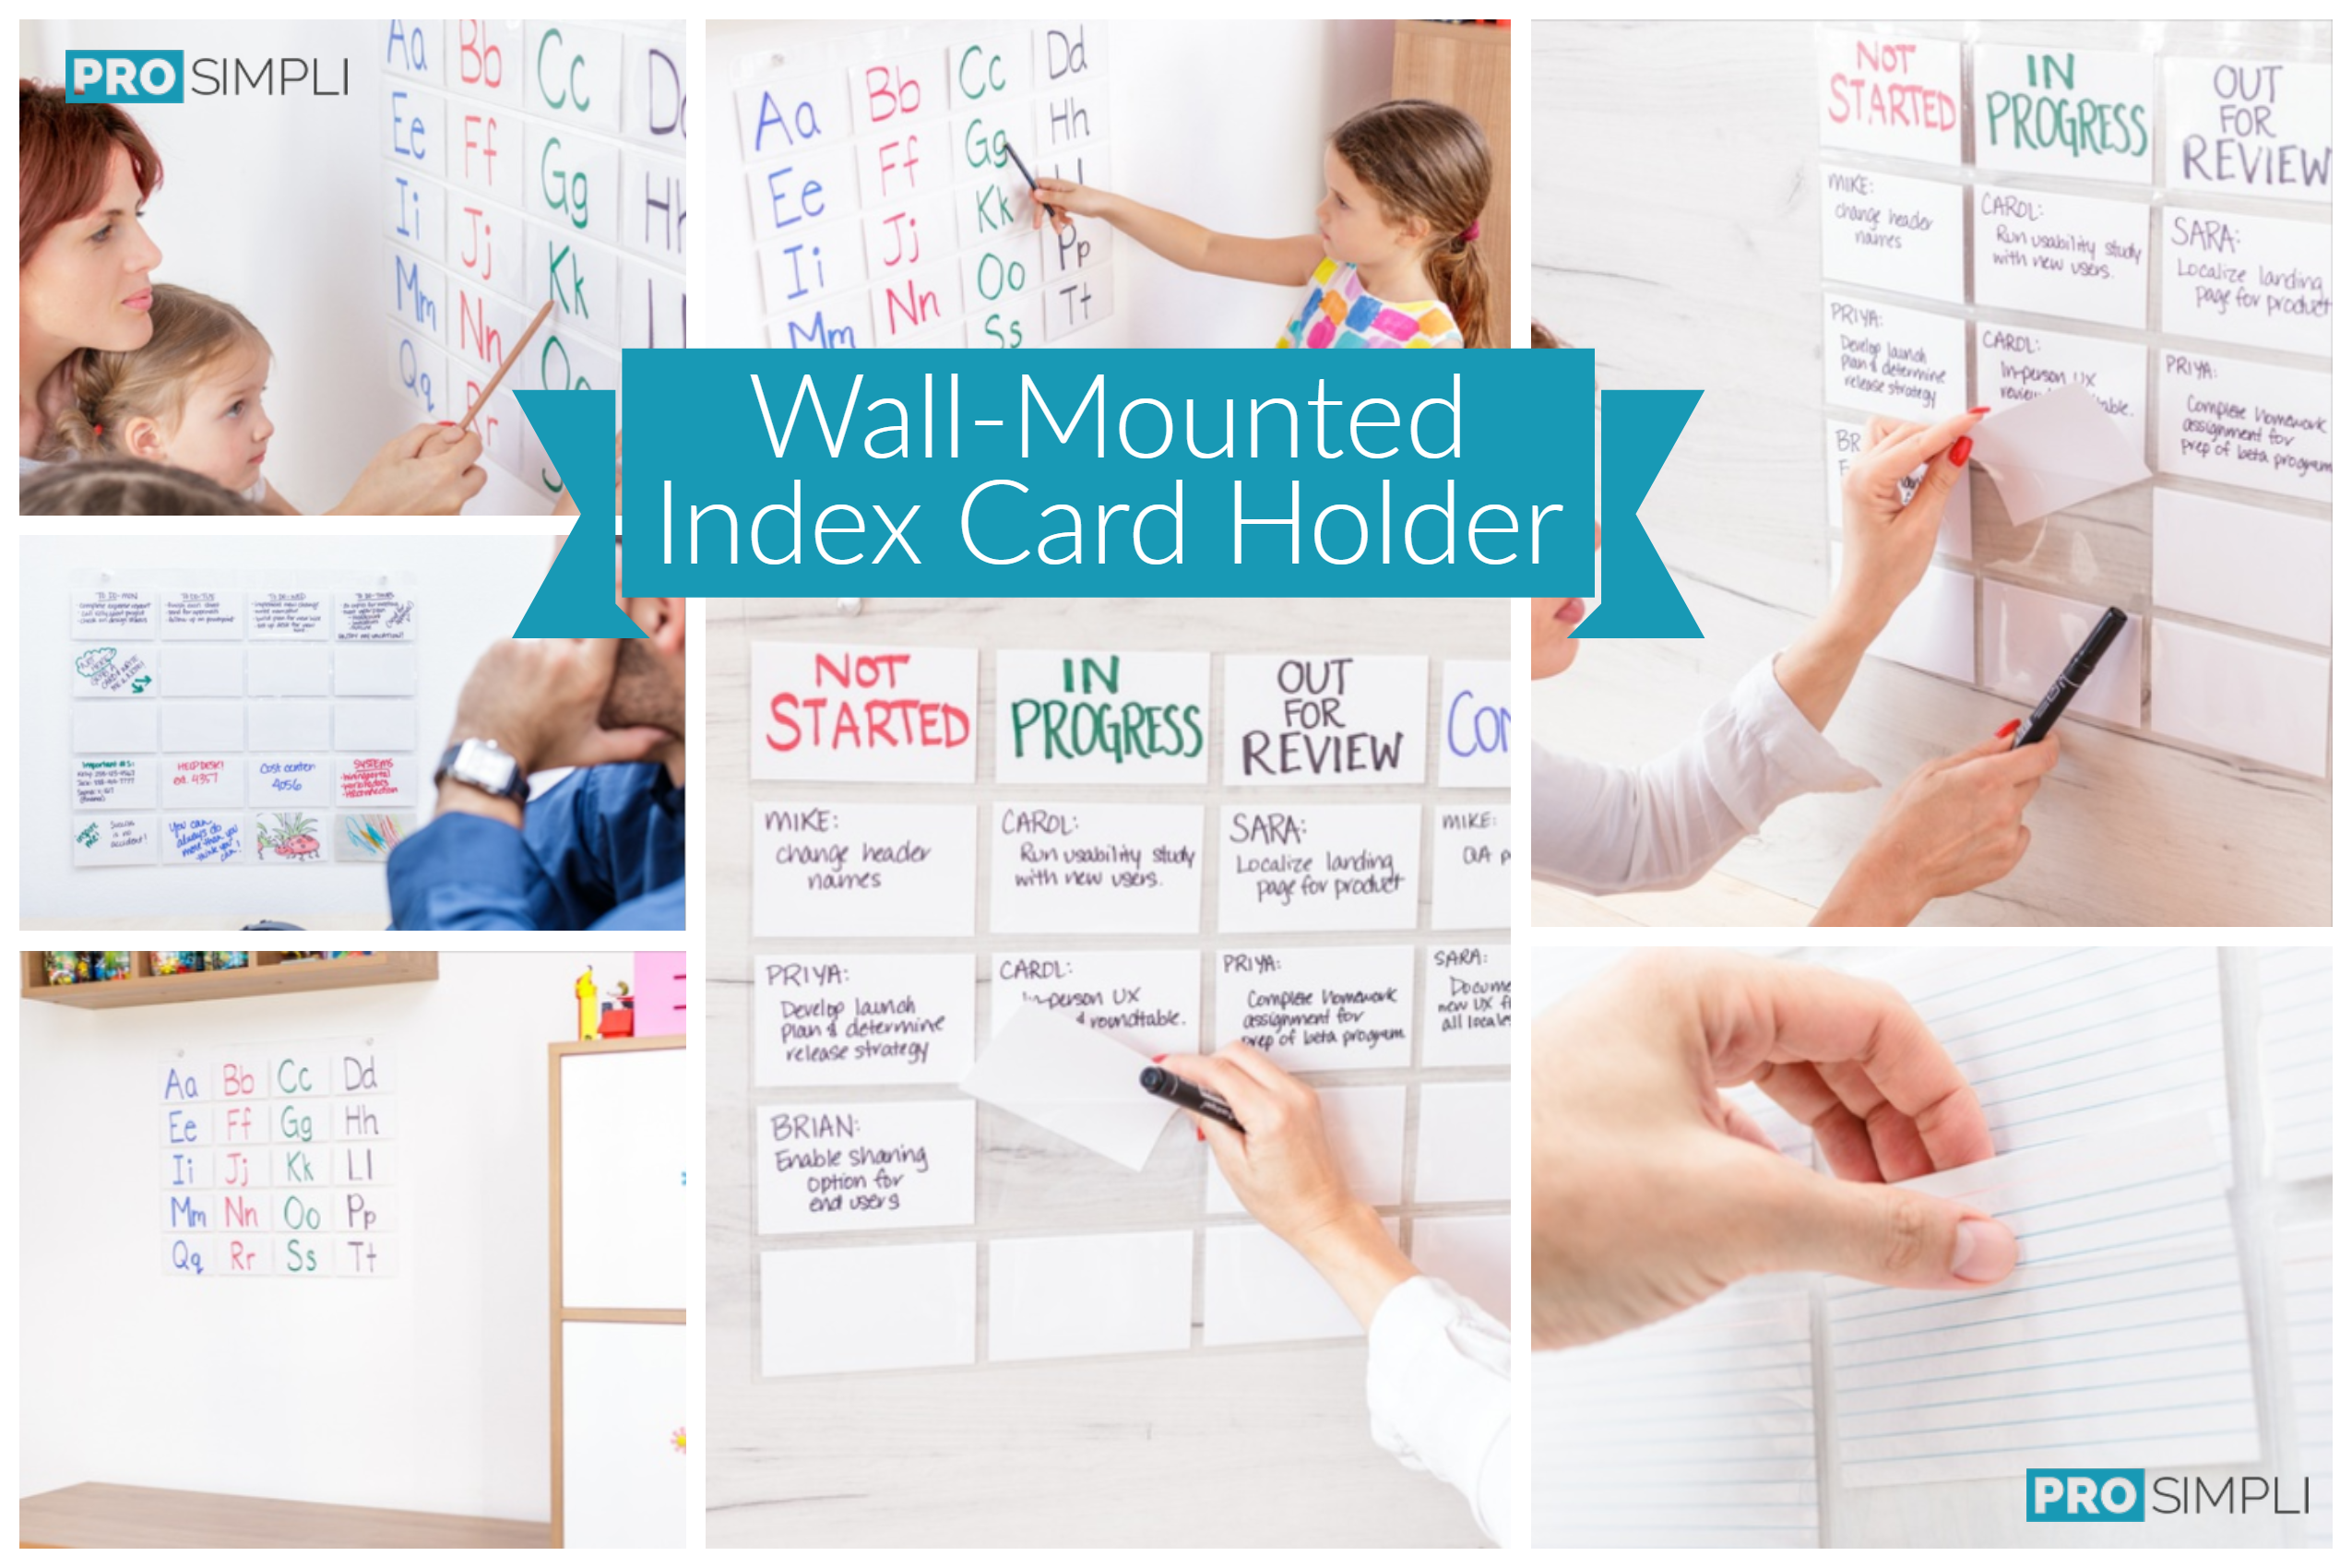 Wall-Mounted Index Card Holder Examples